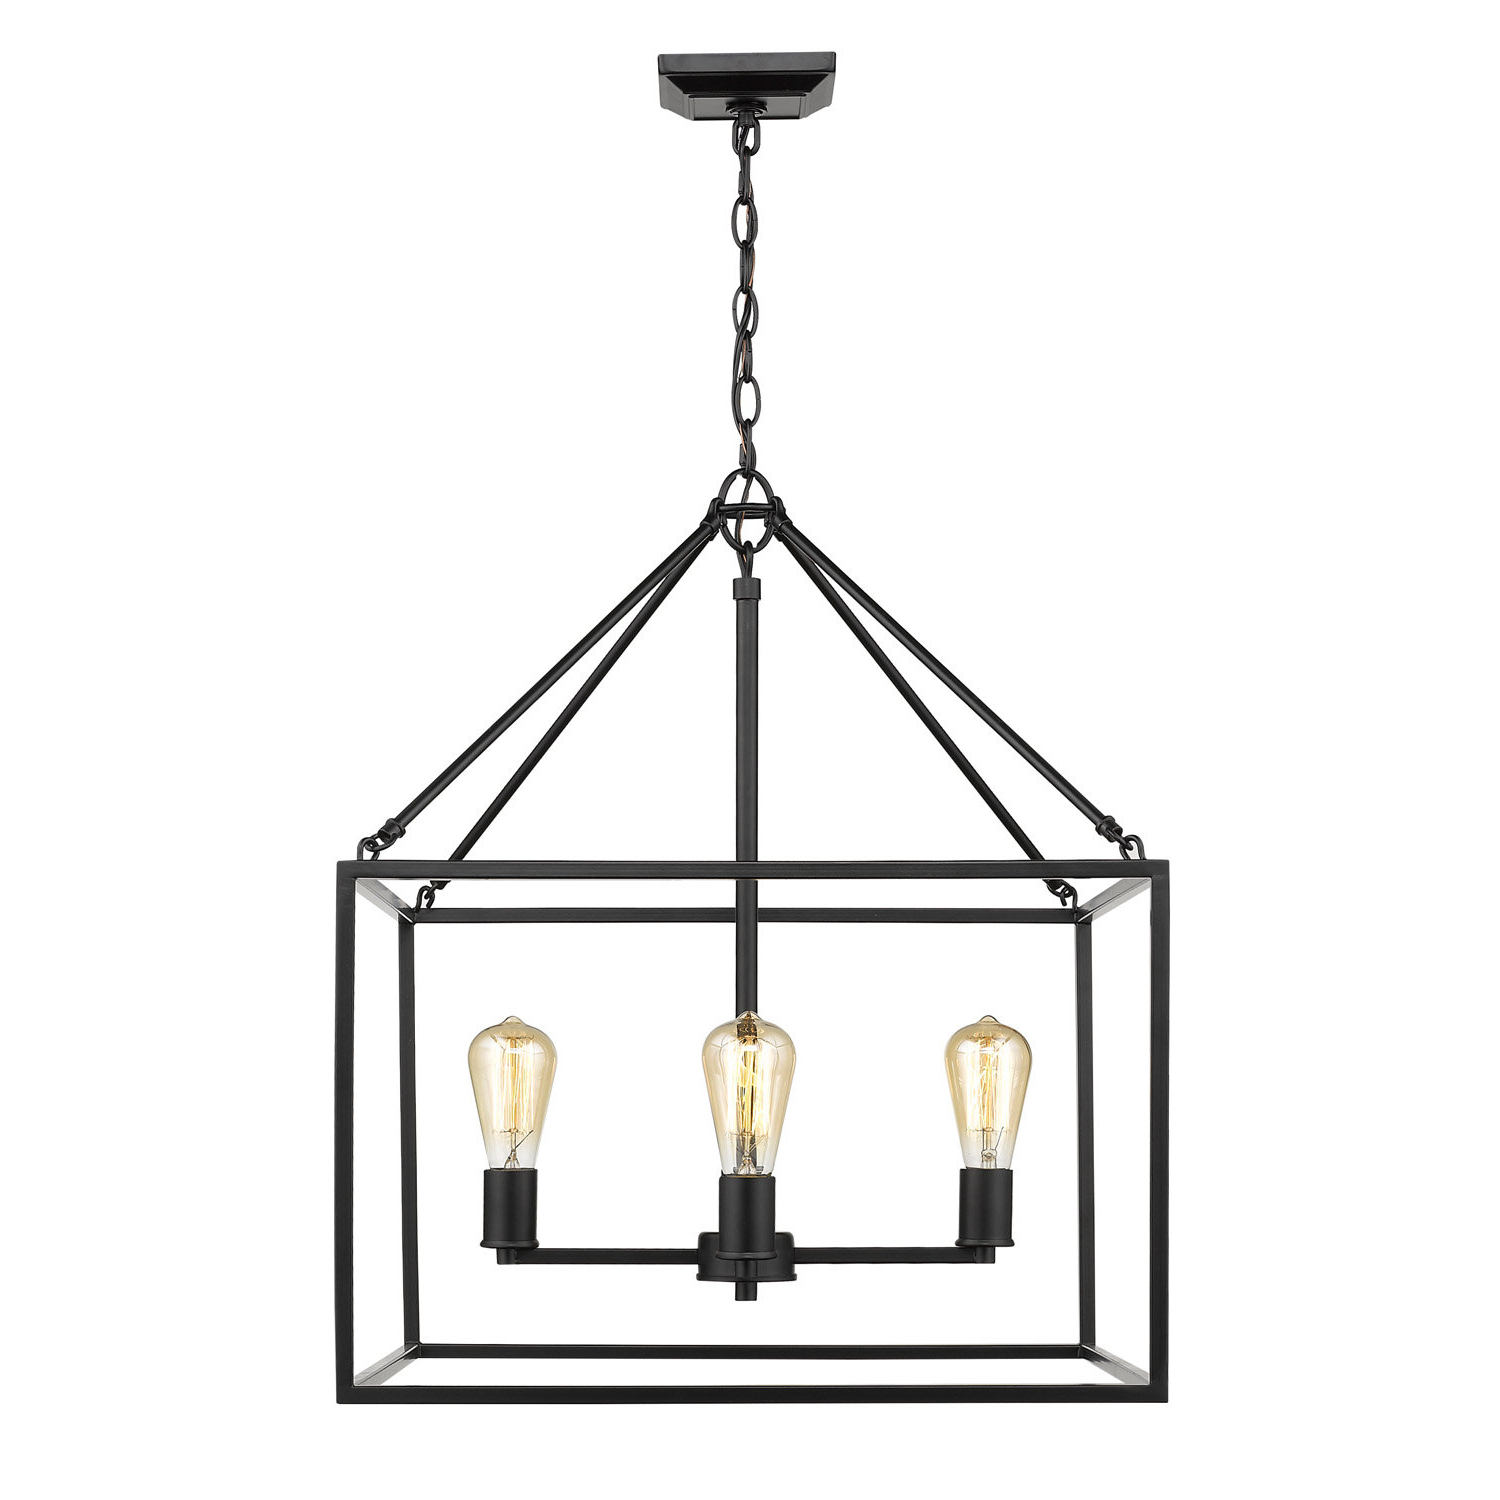 Odie 4 Light Lantern Square Pendants With Most Current Zabel 4 Light Lantern Square / Rectangle Pendant (View 12 of 25)